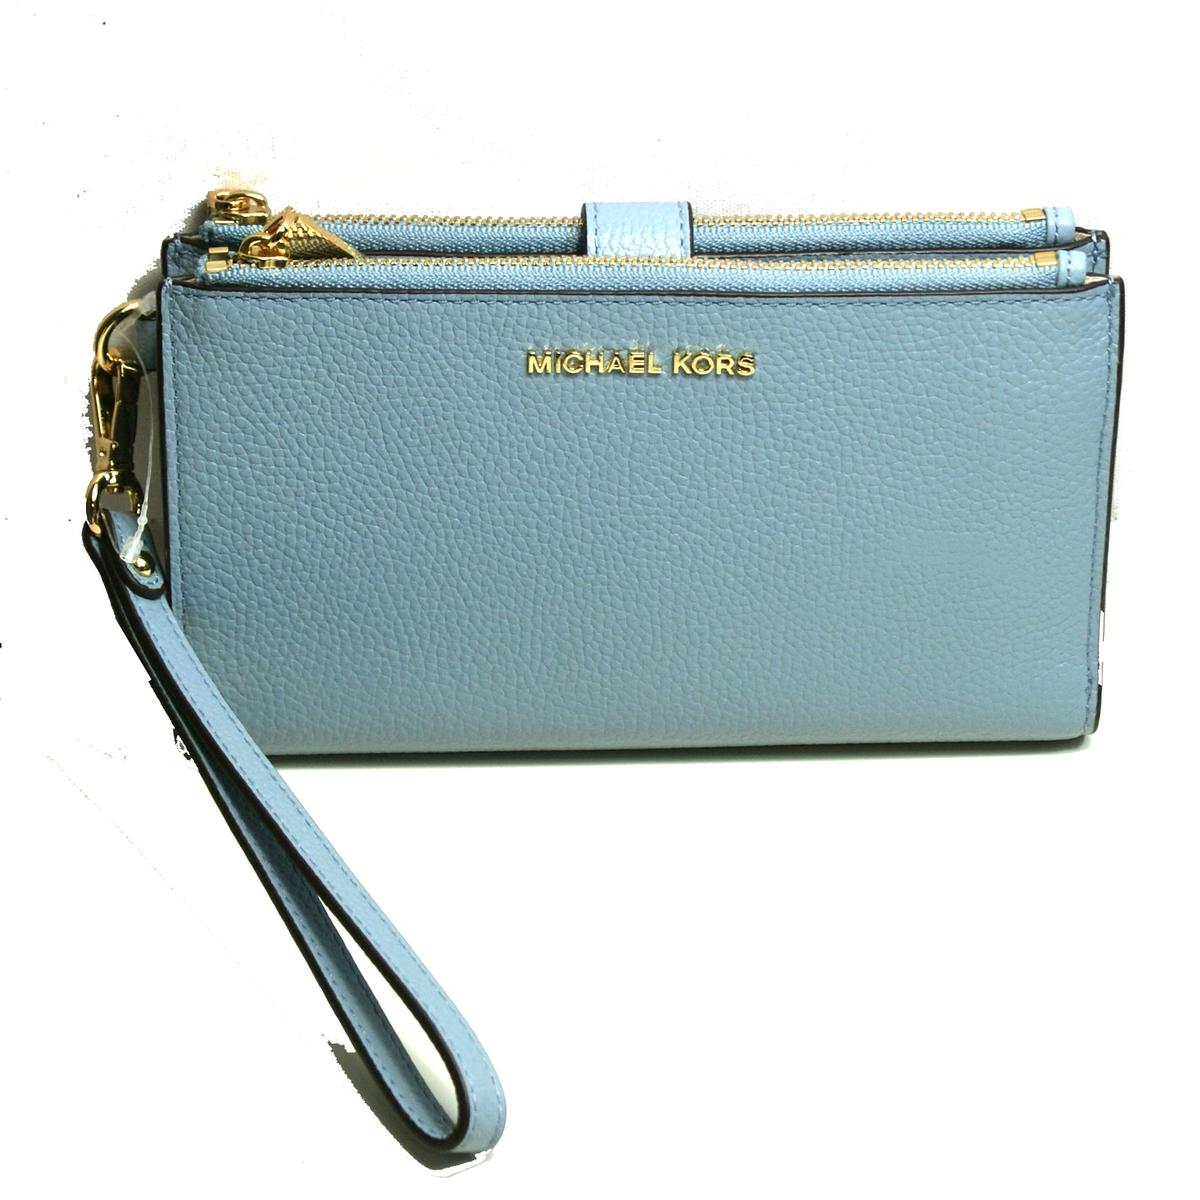 abf50aa8d7355e Home · Michael Kors · Double Zip Leather Clutch/ Wristlet Pale Blue. CLICK  THUMBNAIL TO ZOOM. Found ...